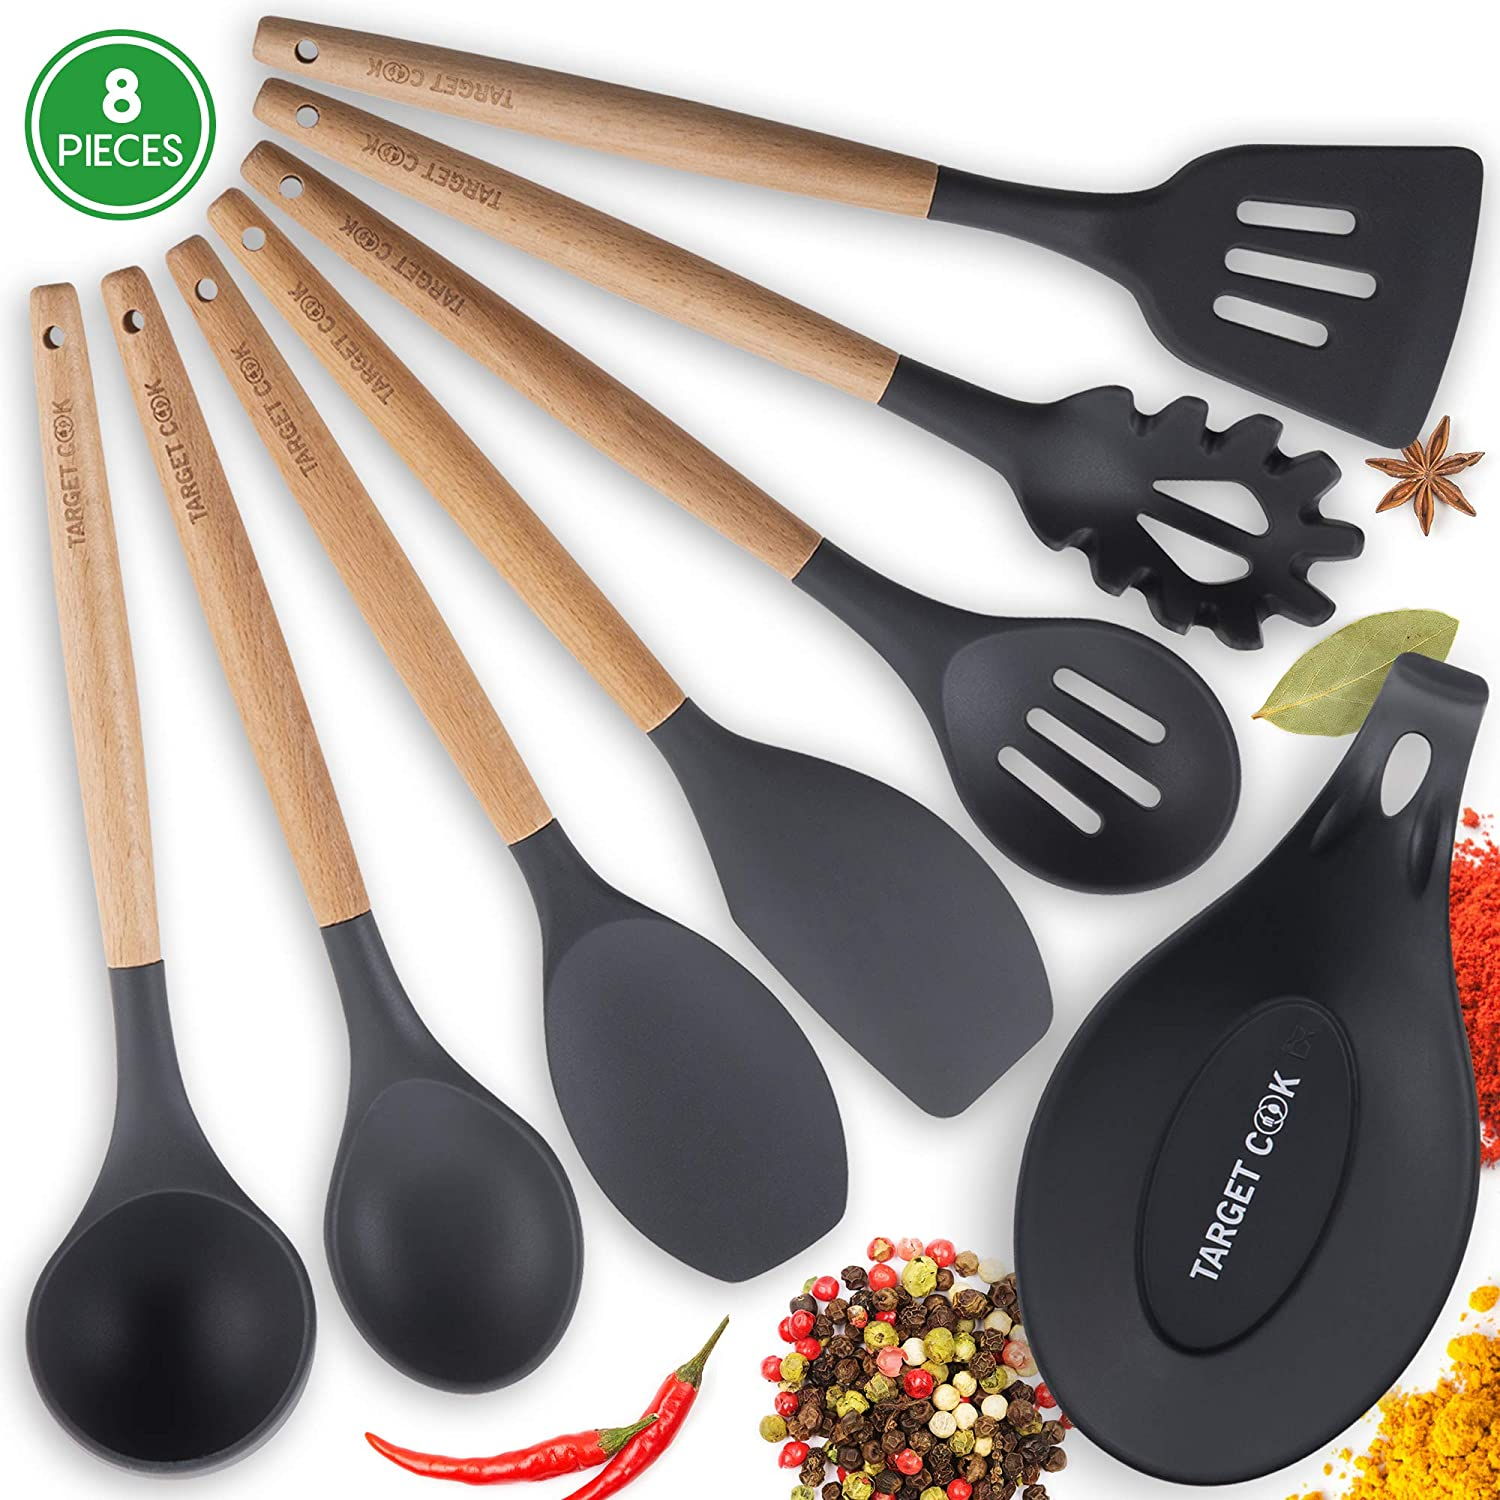 Kitchen Utensil Set - Silicone Cooking Utensils - Kitchen Utensils - Cooking Tools - Wooden Utensils - Wooden Handle Cooking Spoons TargetCook